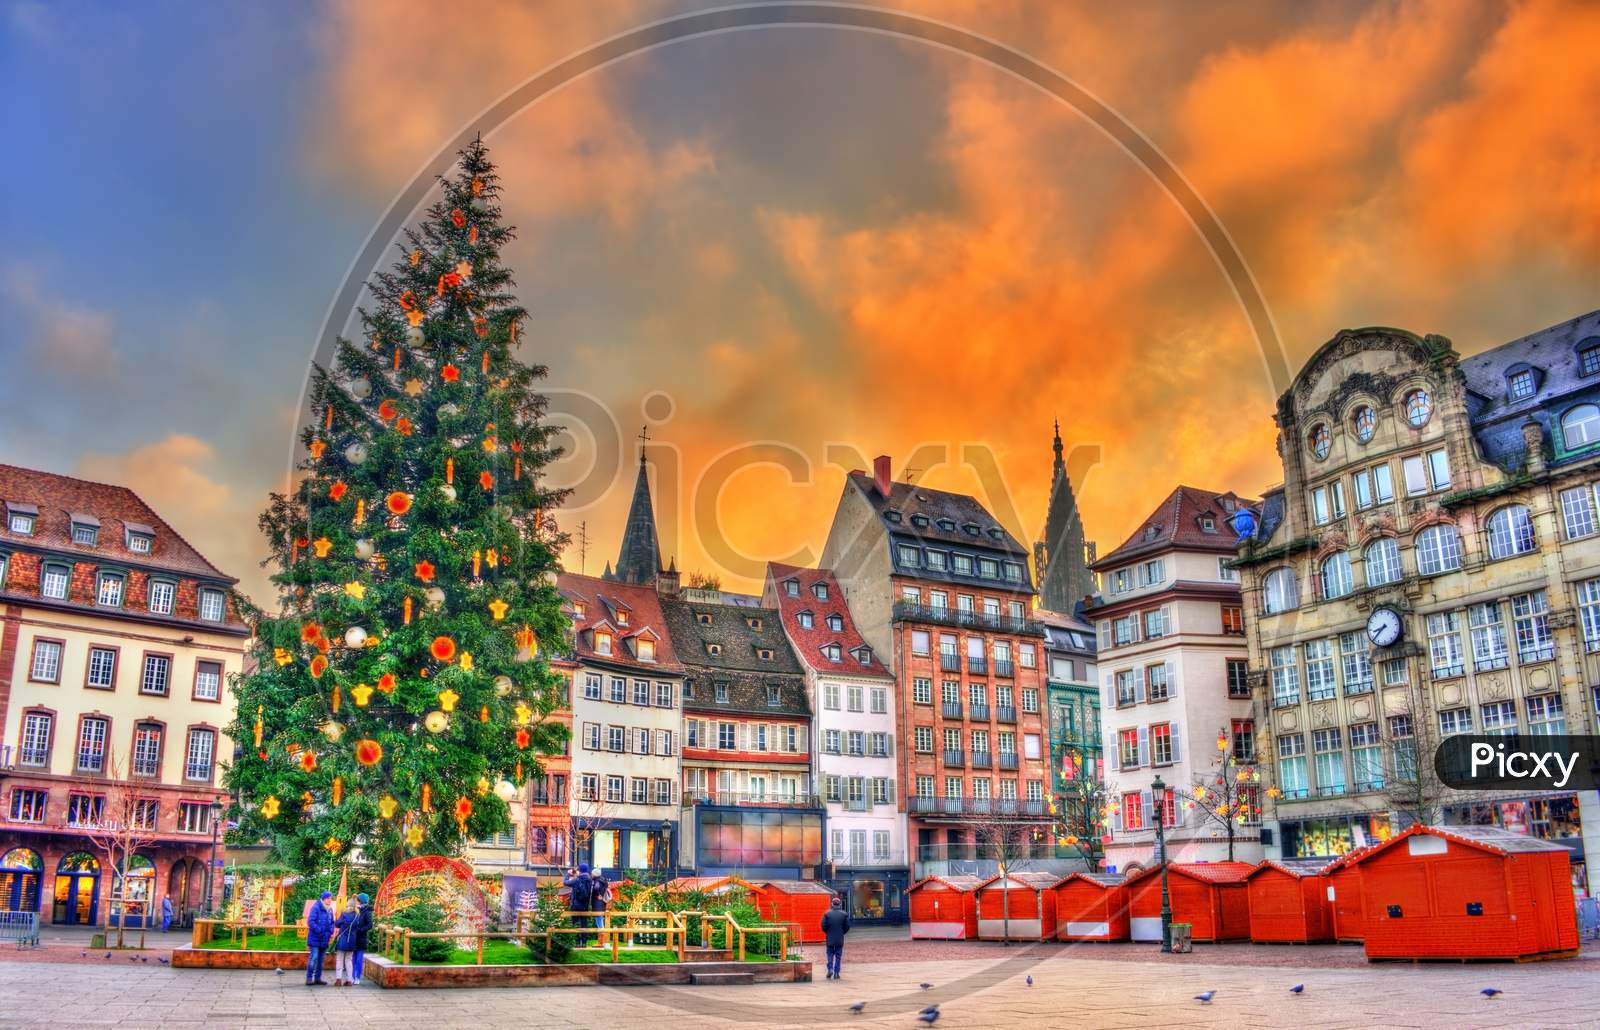 Christmas Tree At The Christmas Market In Strasbourg, France